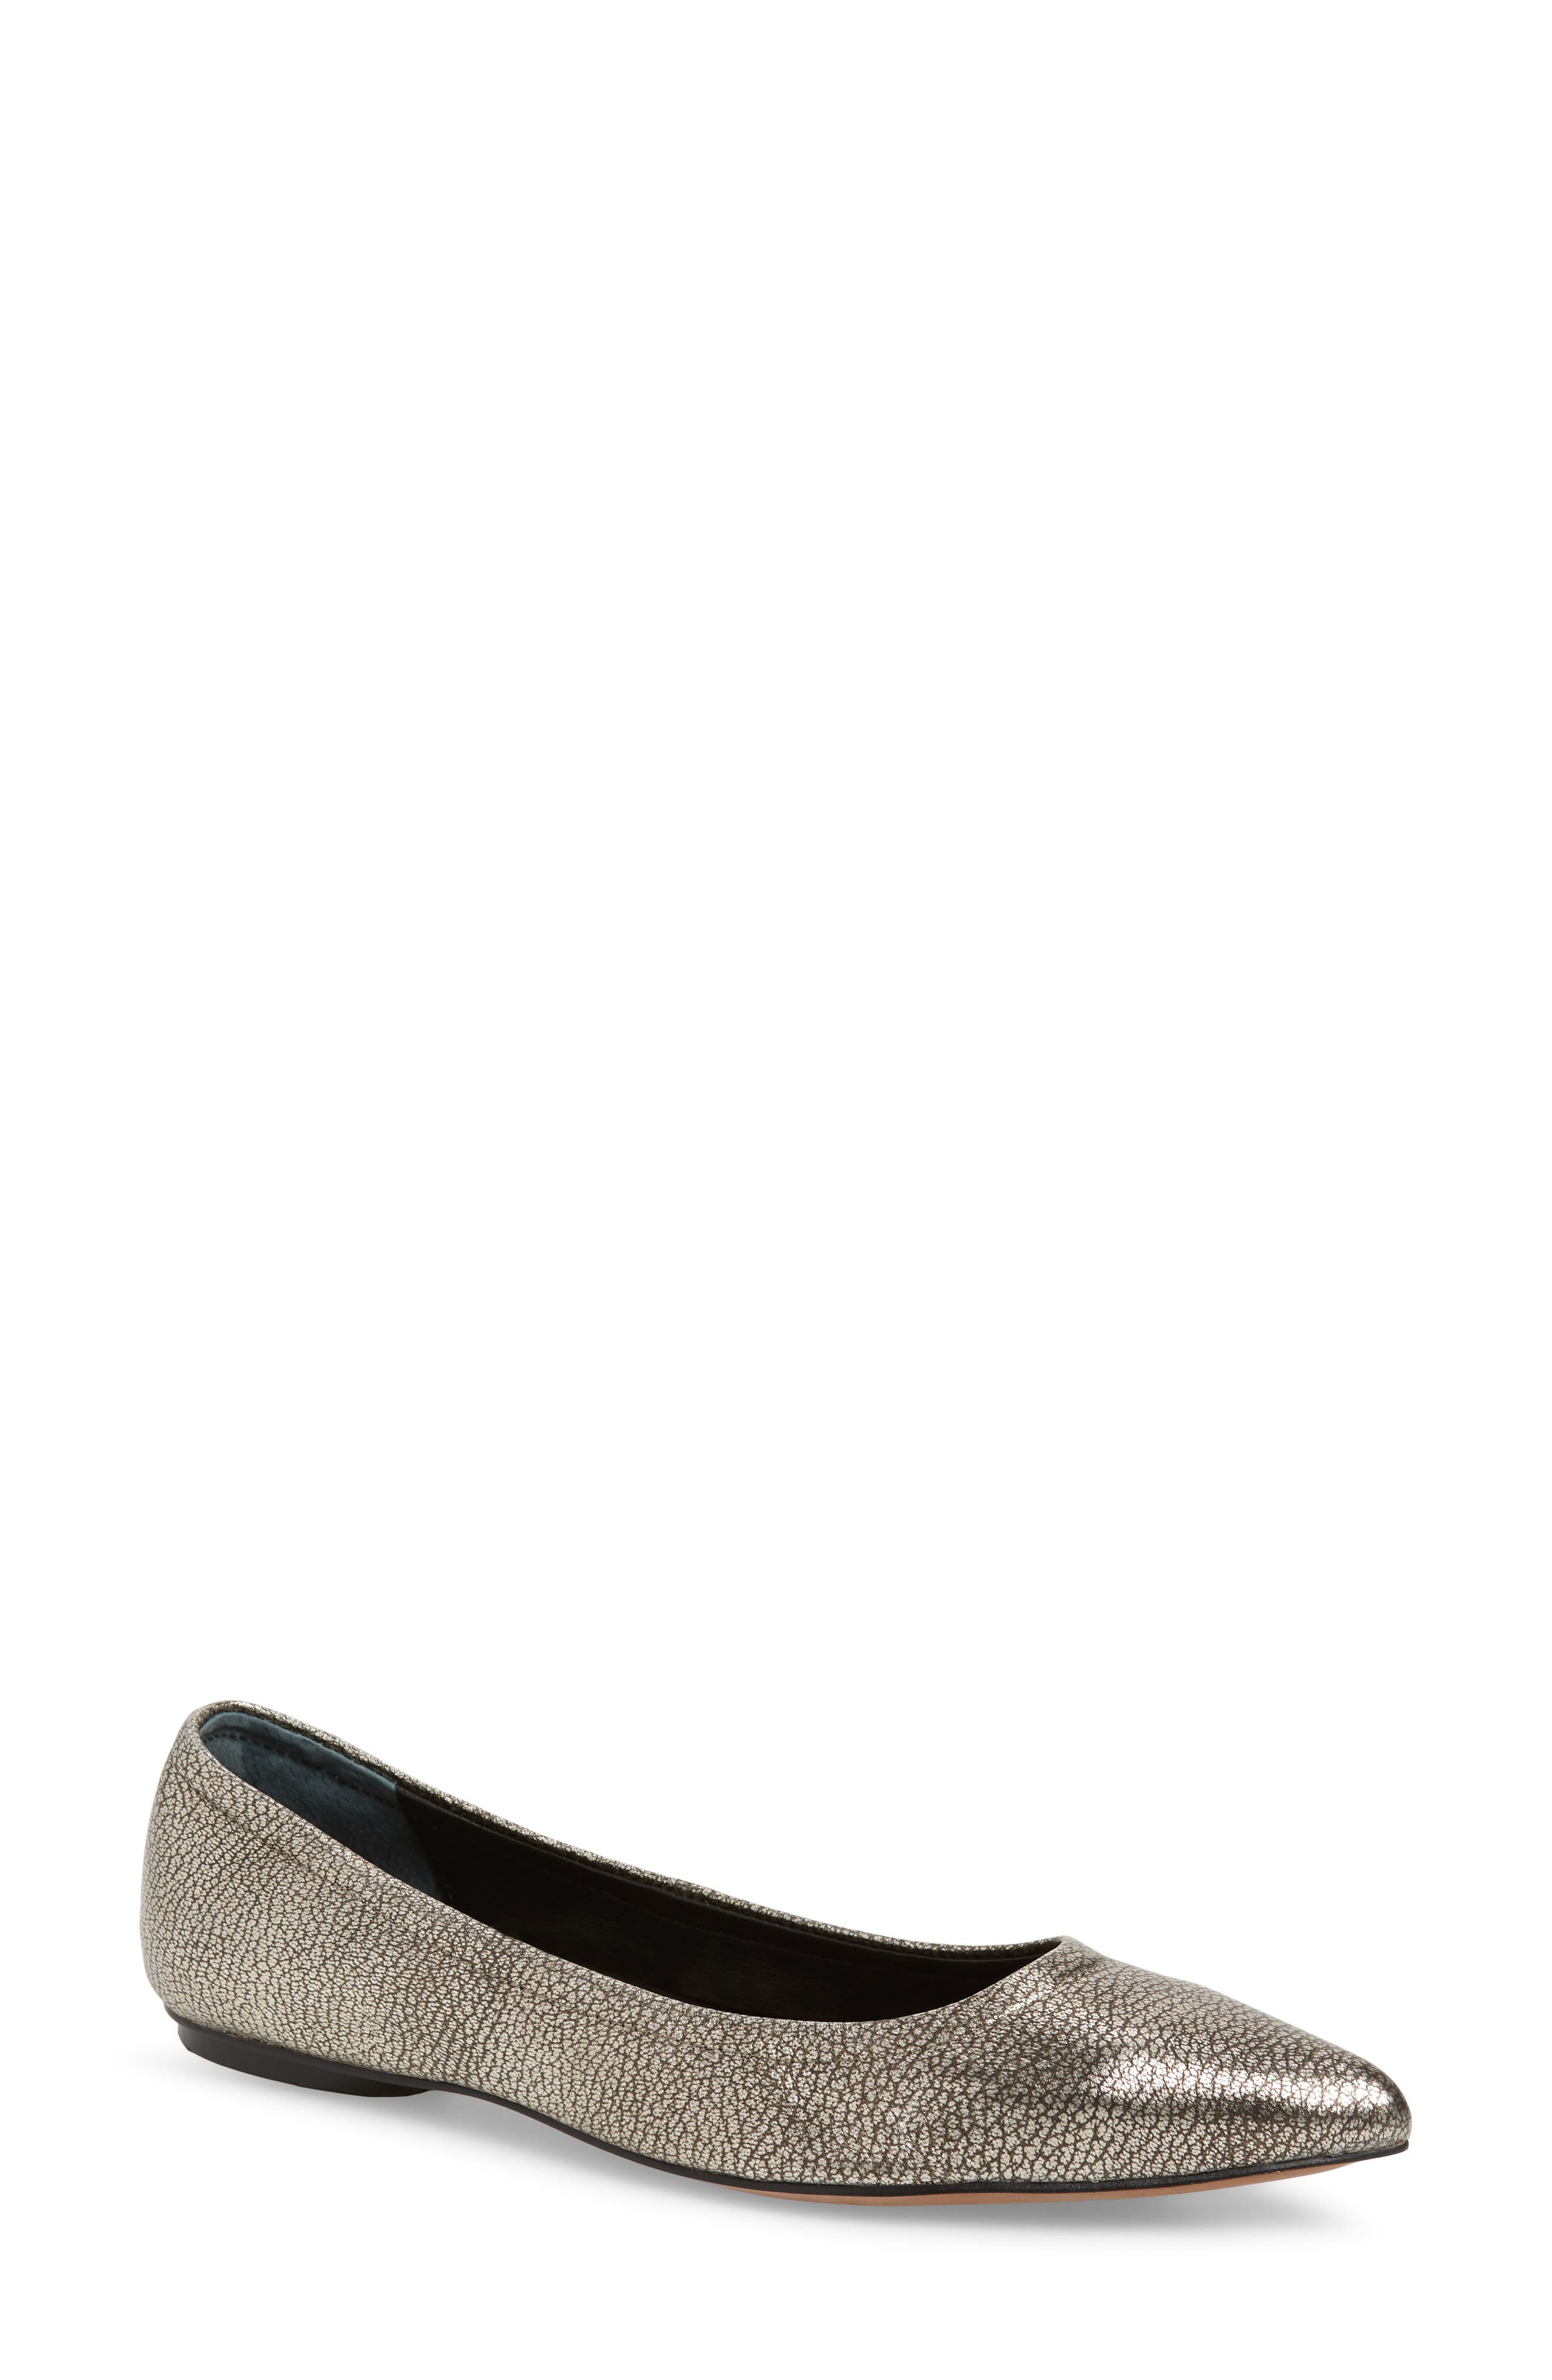 LINEA PAOLO Nico Pointy Toe Flat, Main, color, ANTHRACITE LEATHER